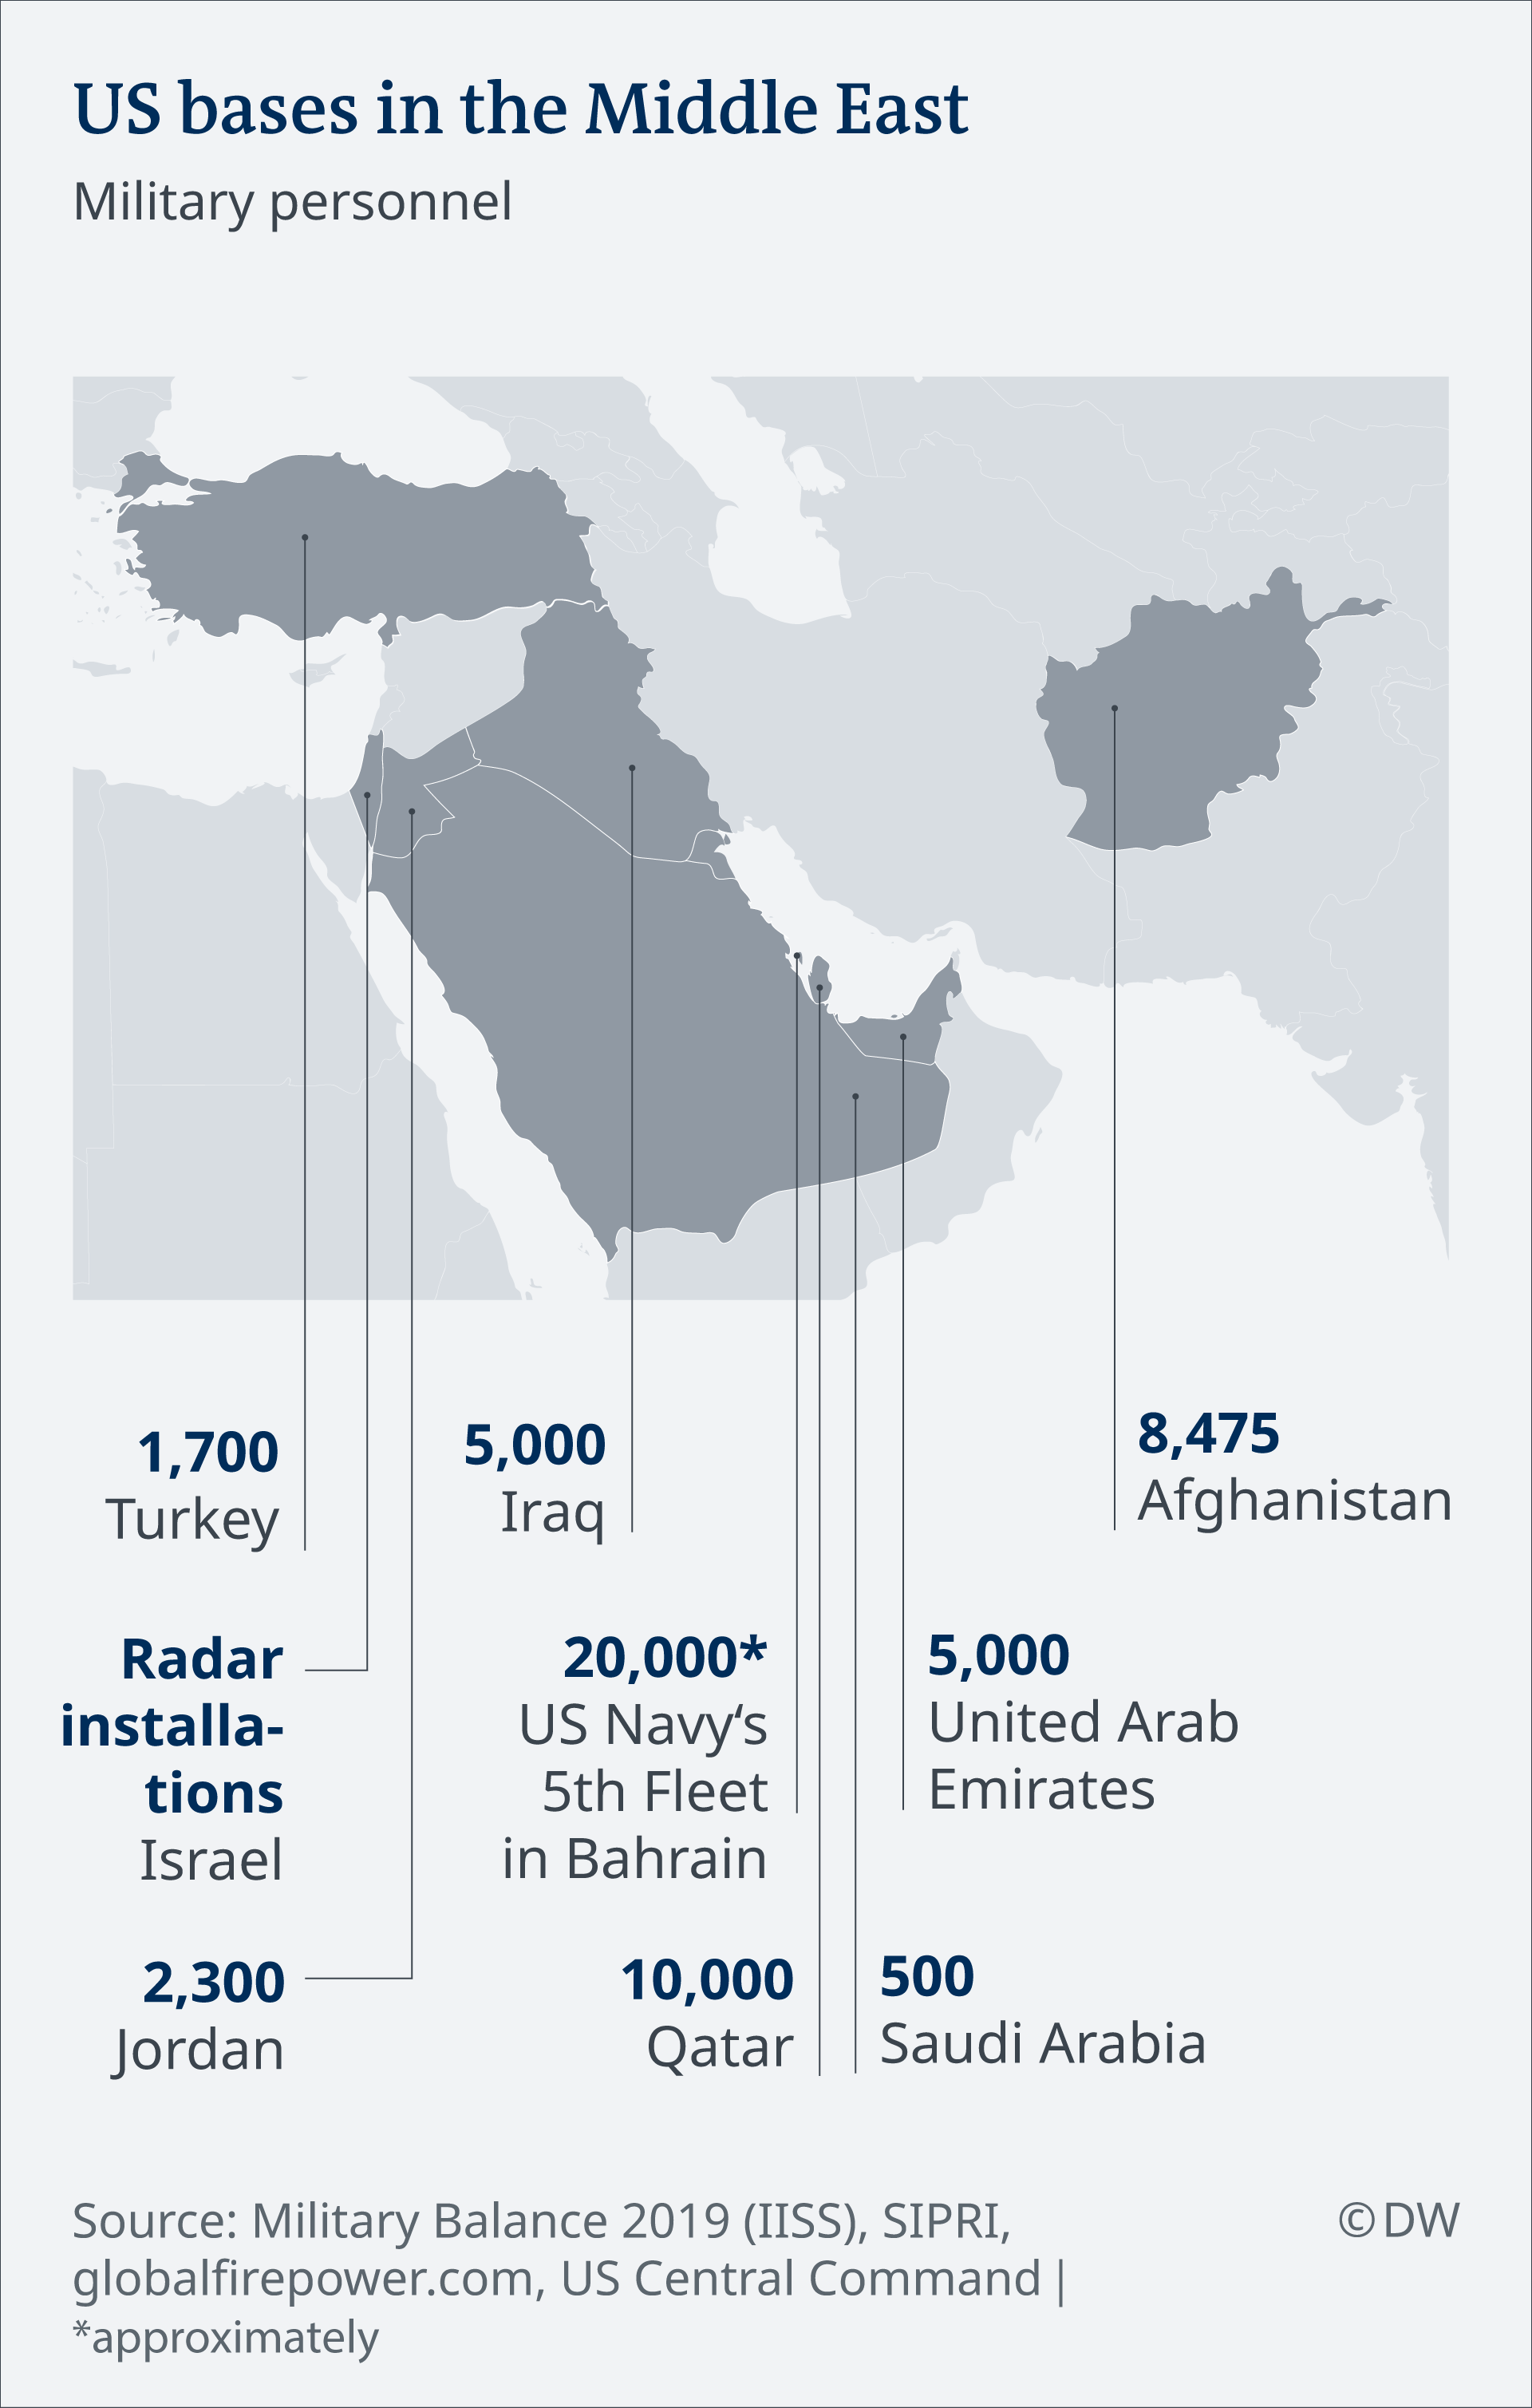 Map of US deployments in Middle East